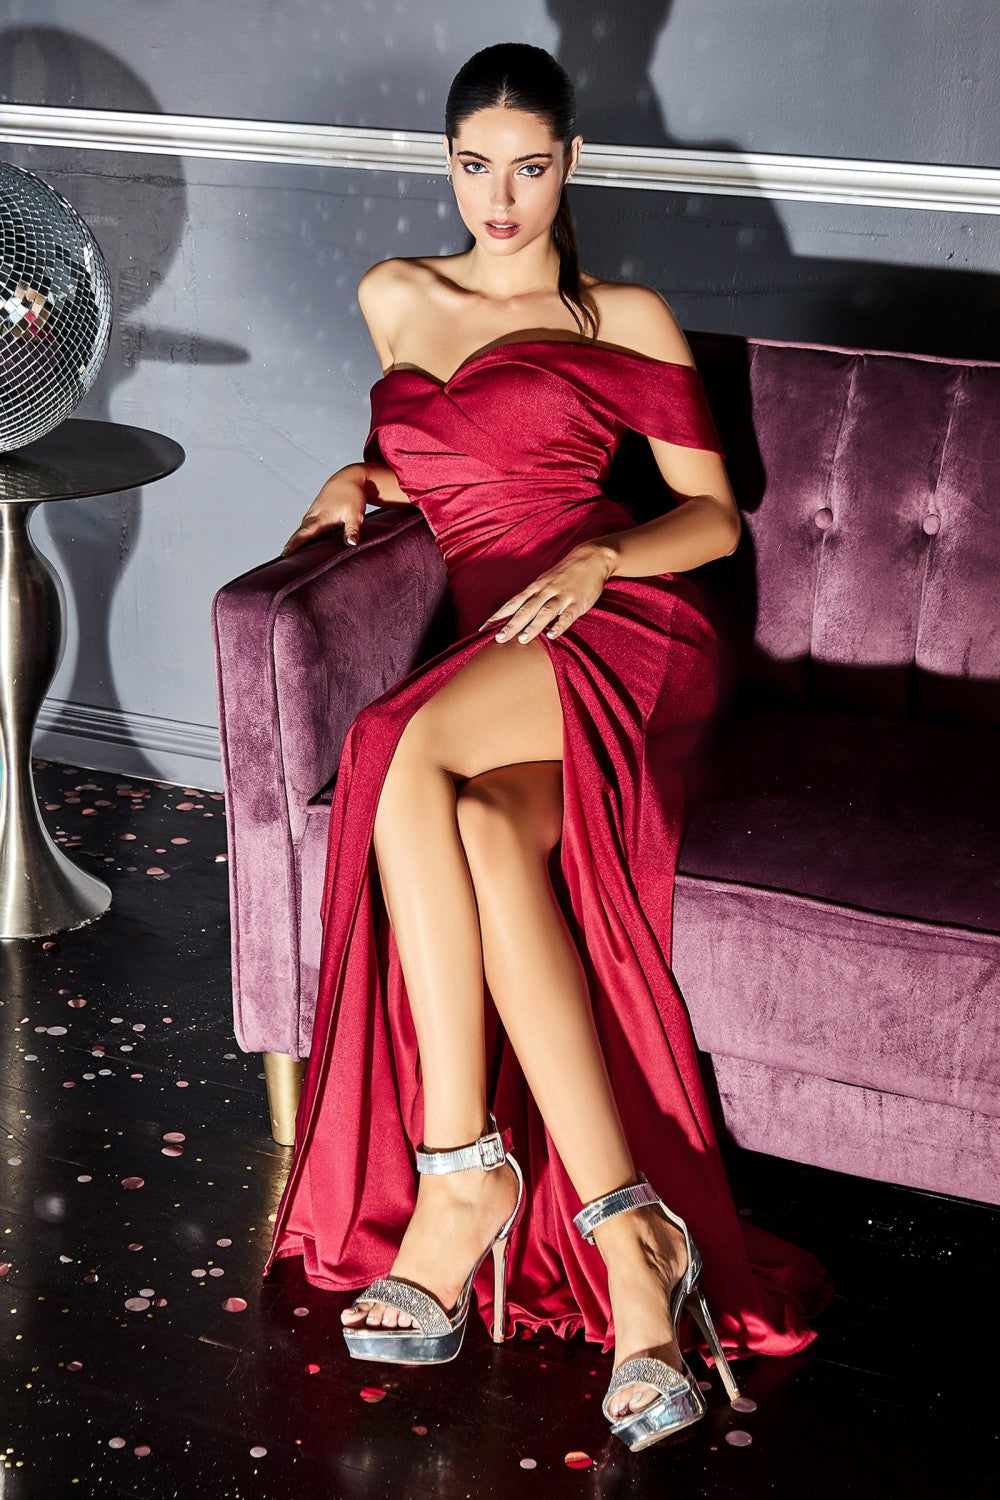 Dawn Off the Shoulder Bridesmaid with Skirt Slit in Burgundy CKV1050WR-Burgundy SAMPLE IN STORE